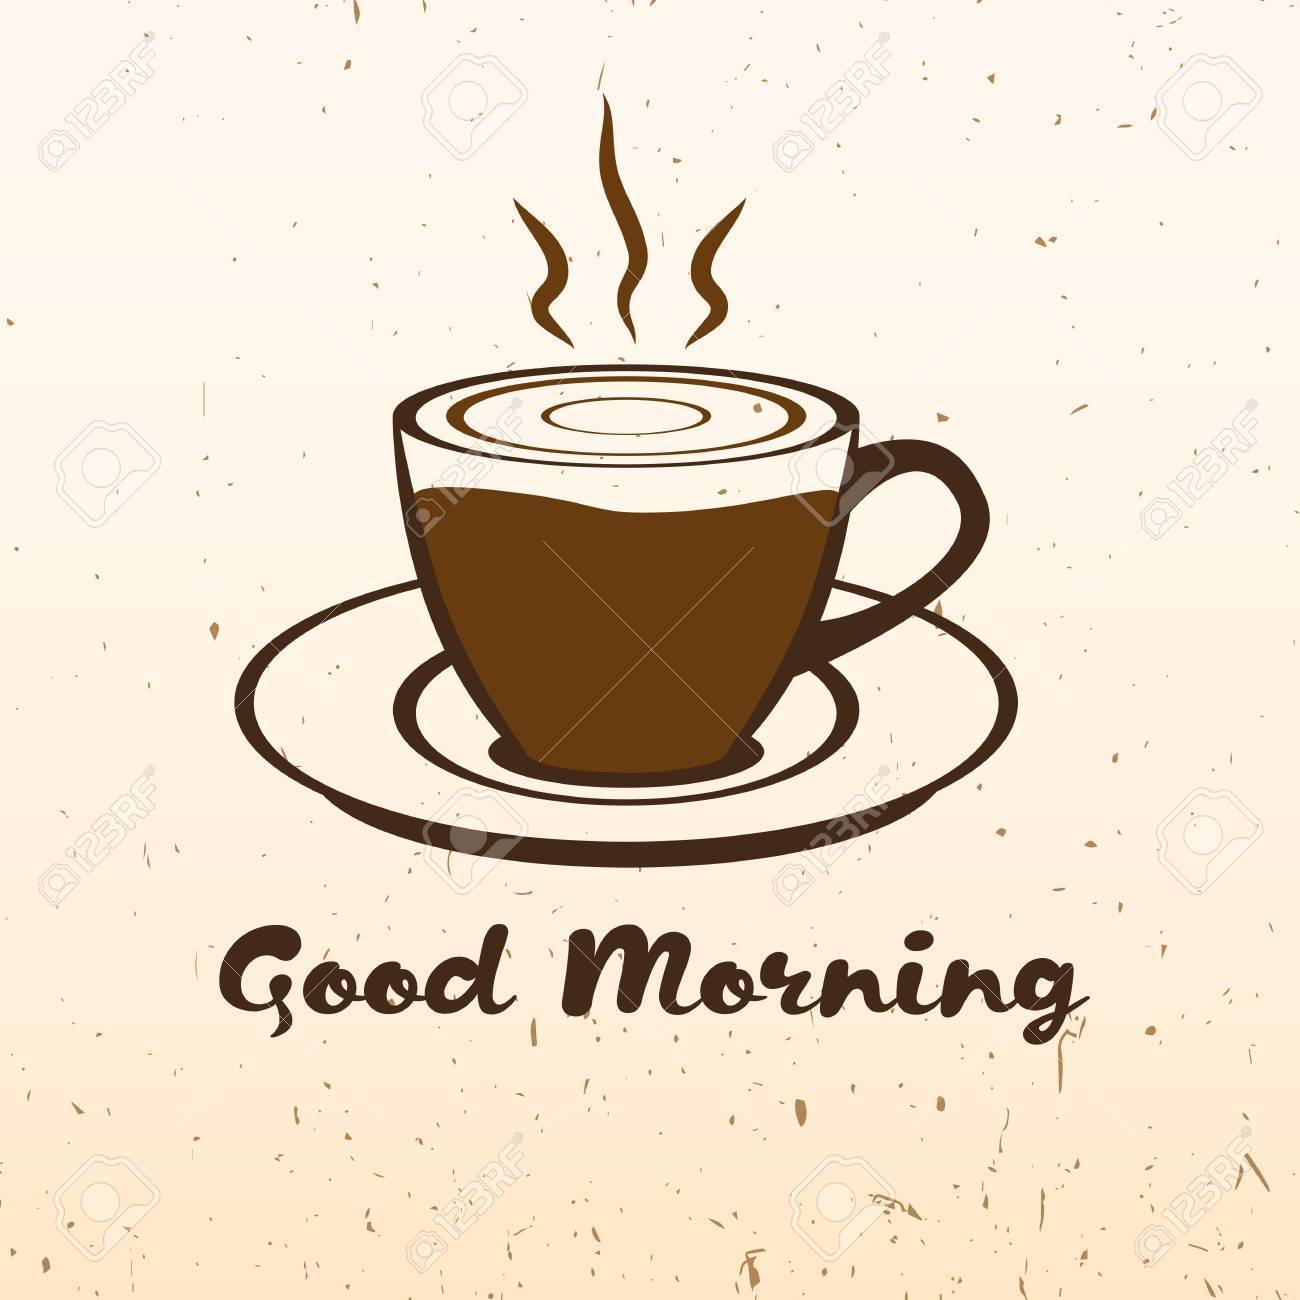 Good Morning Coffee Cup Hot Drinks Vivacity For Your Design